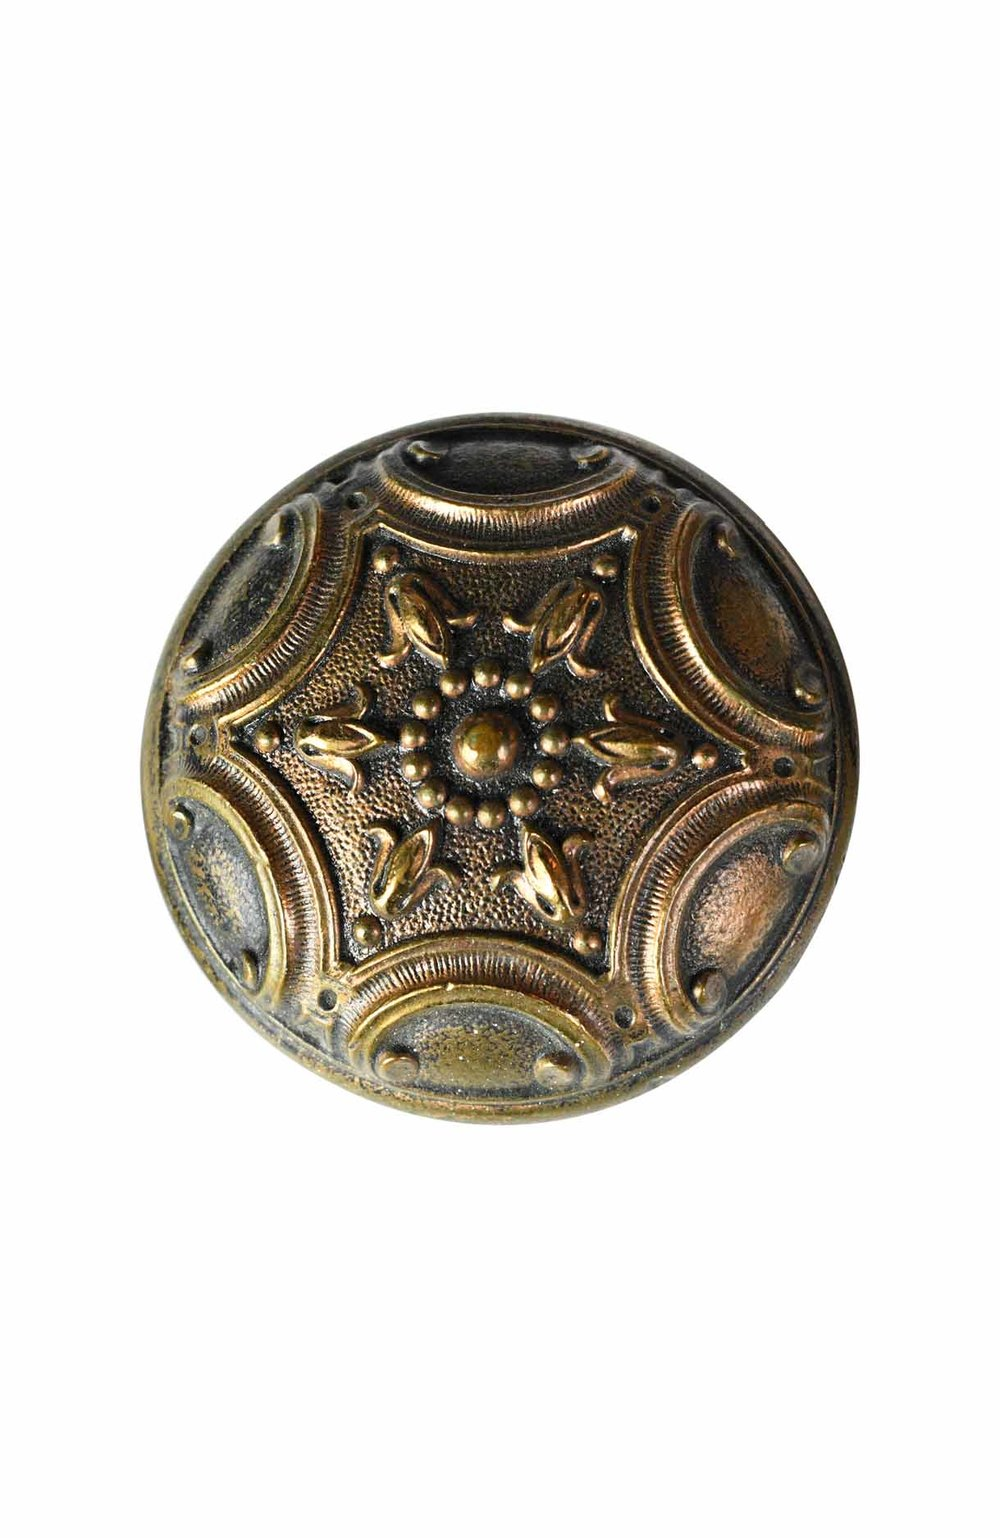 BRASS NORMA DOORKNOB AA# H20209   5 pairs available $135.00 each pair